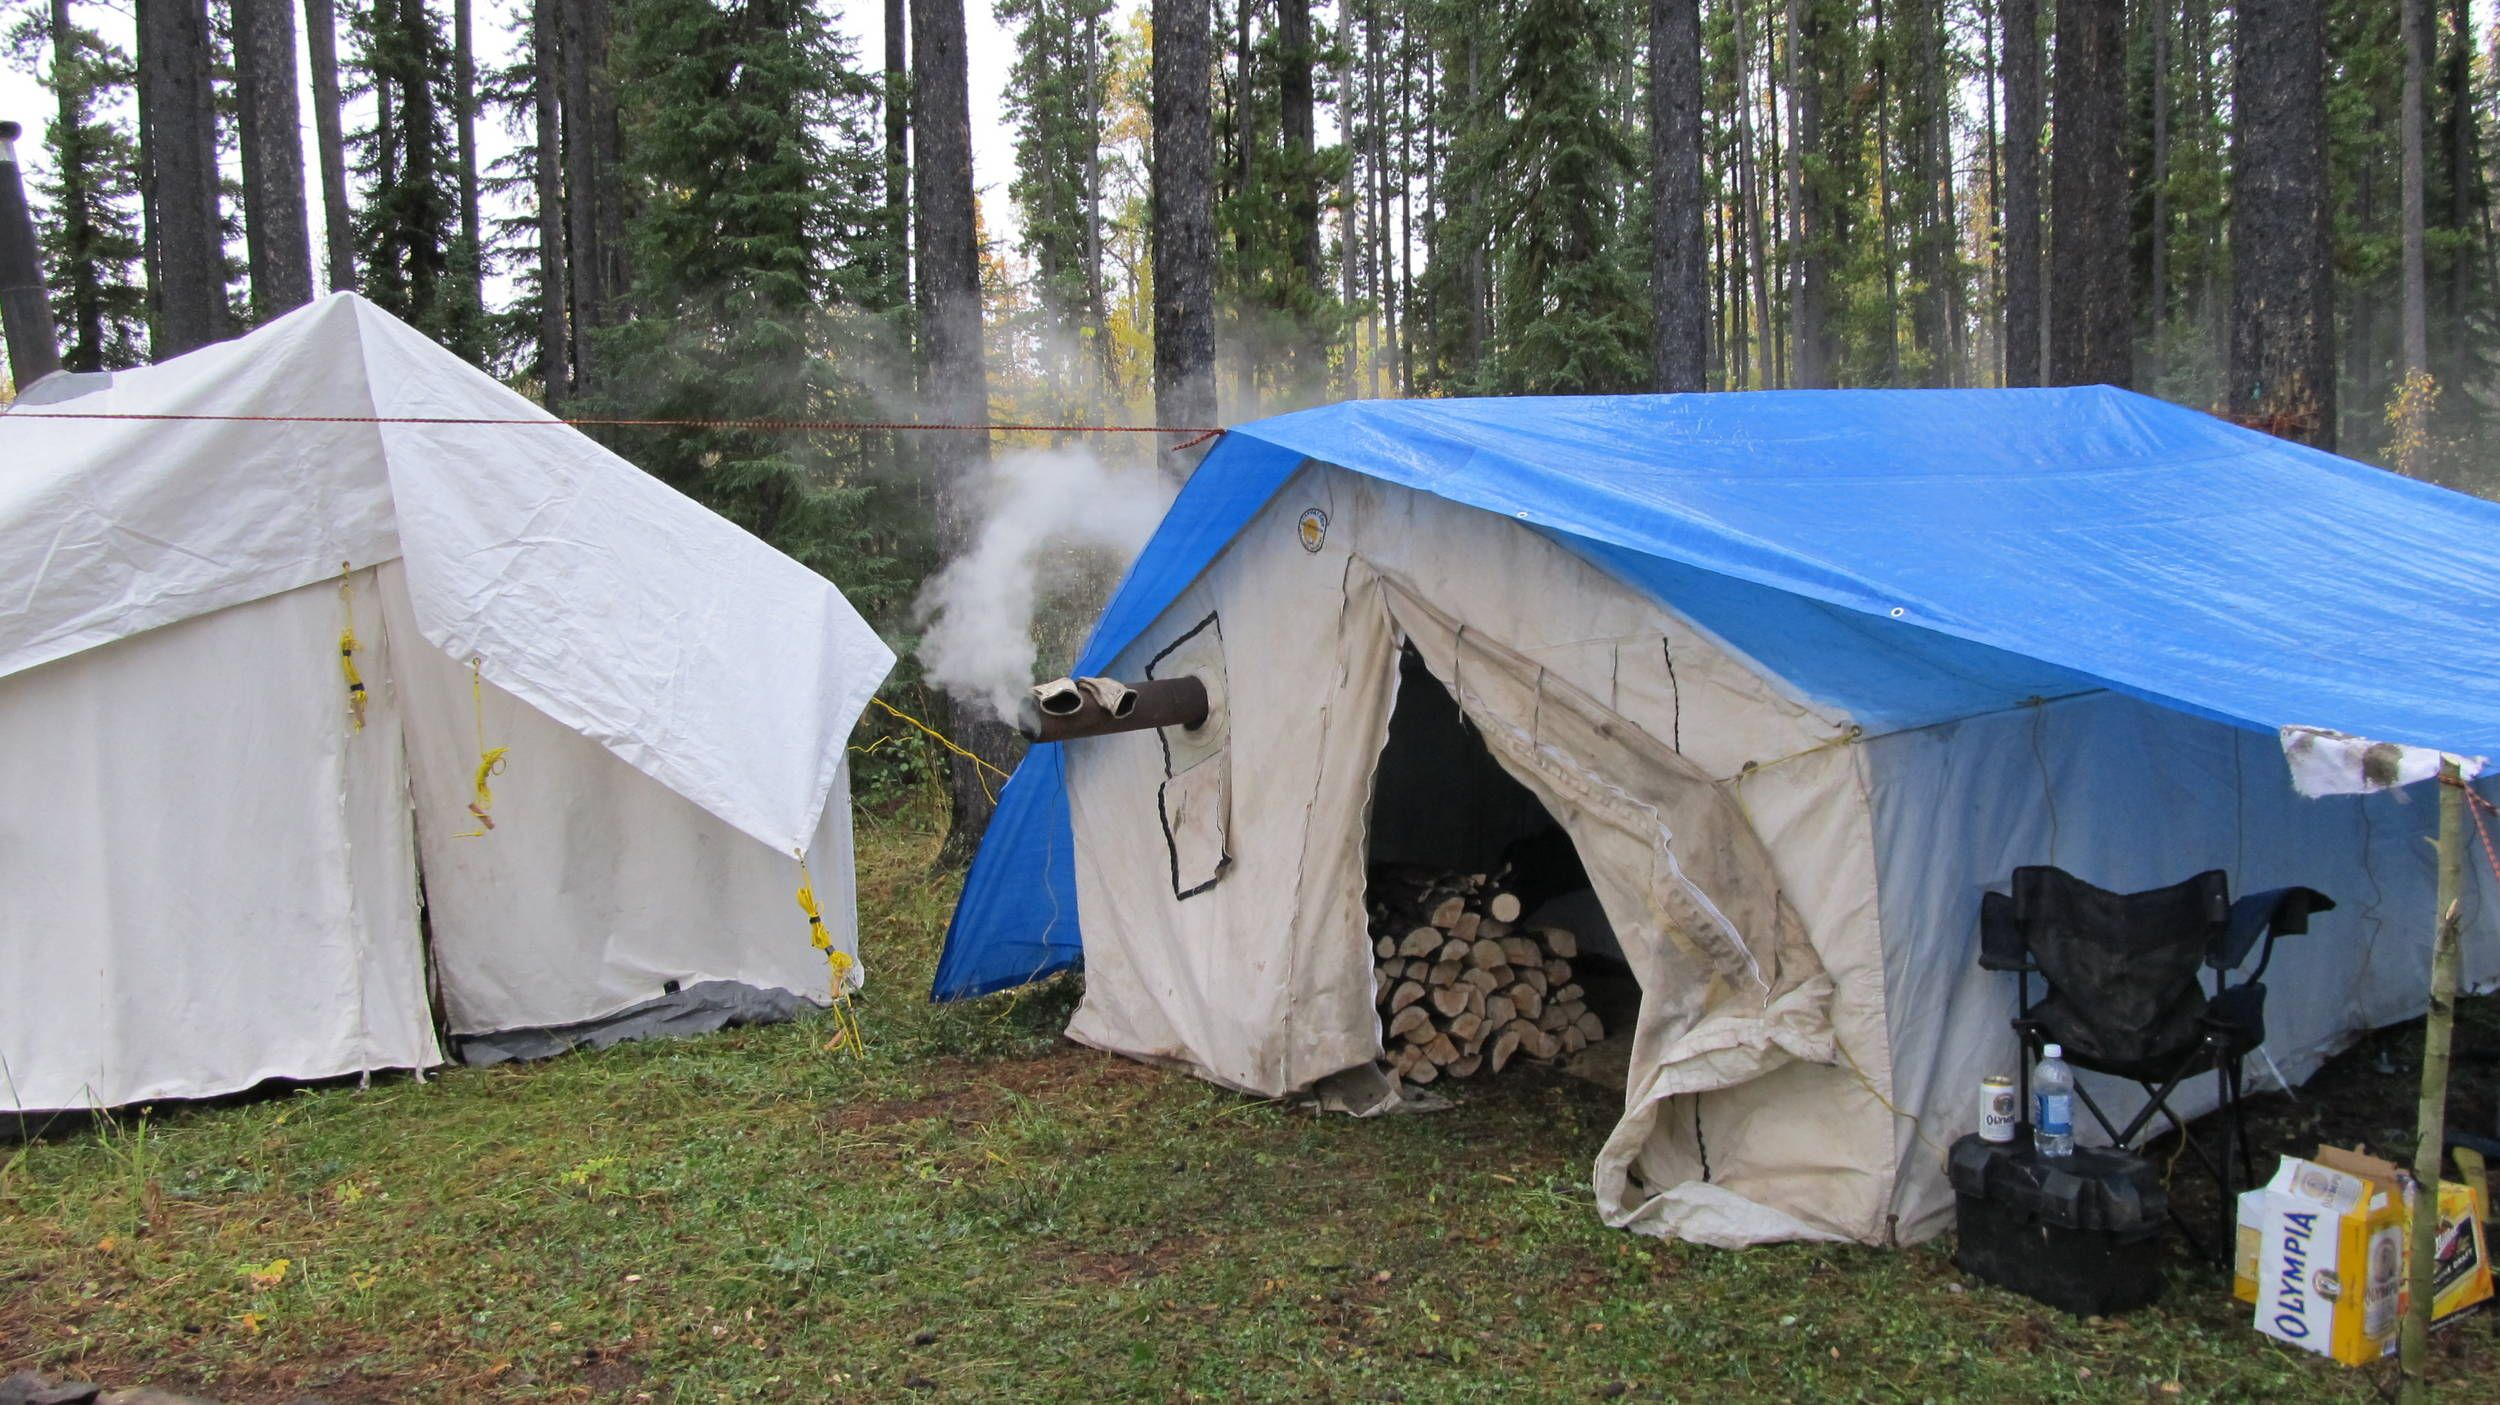 Best Wall Tent Canvas & Best Wall Tent Canvas | Tents Camping and Rendezvoux | Pinterest ...